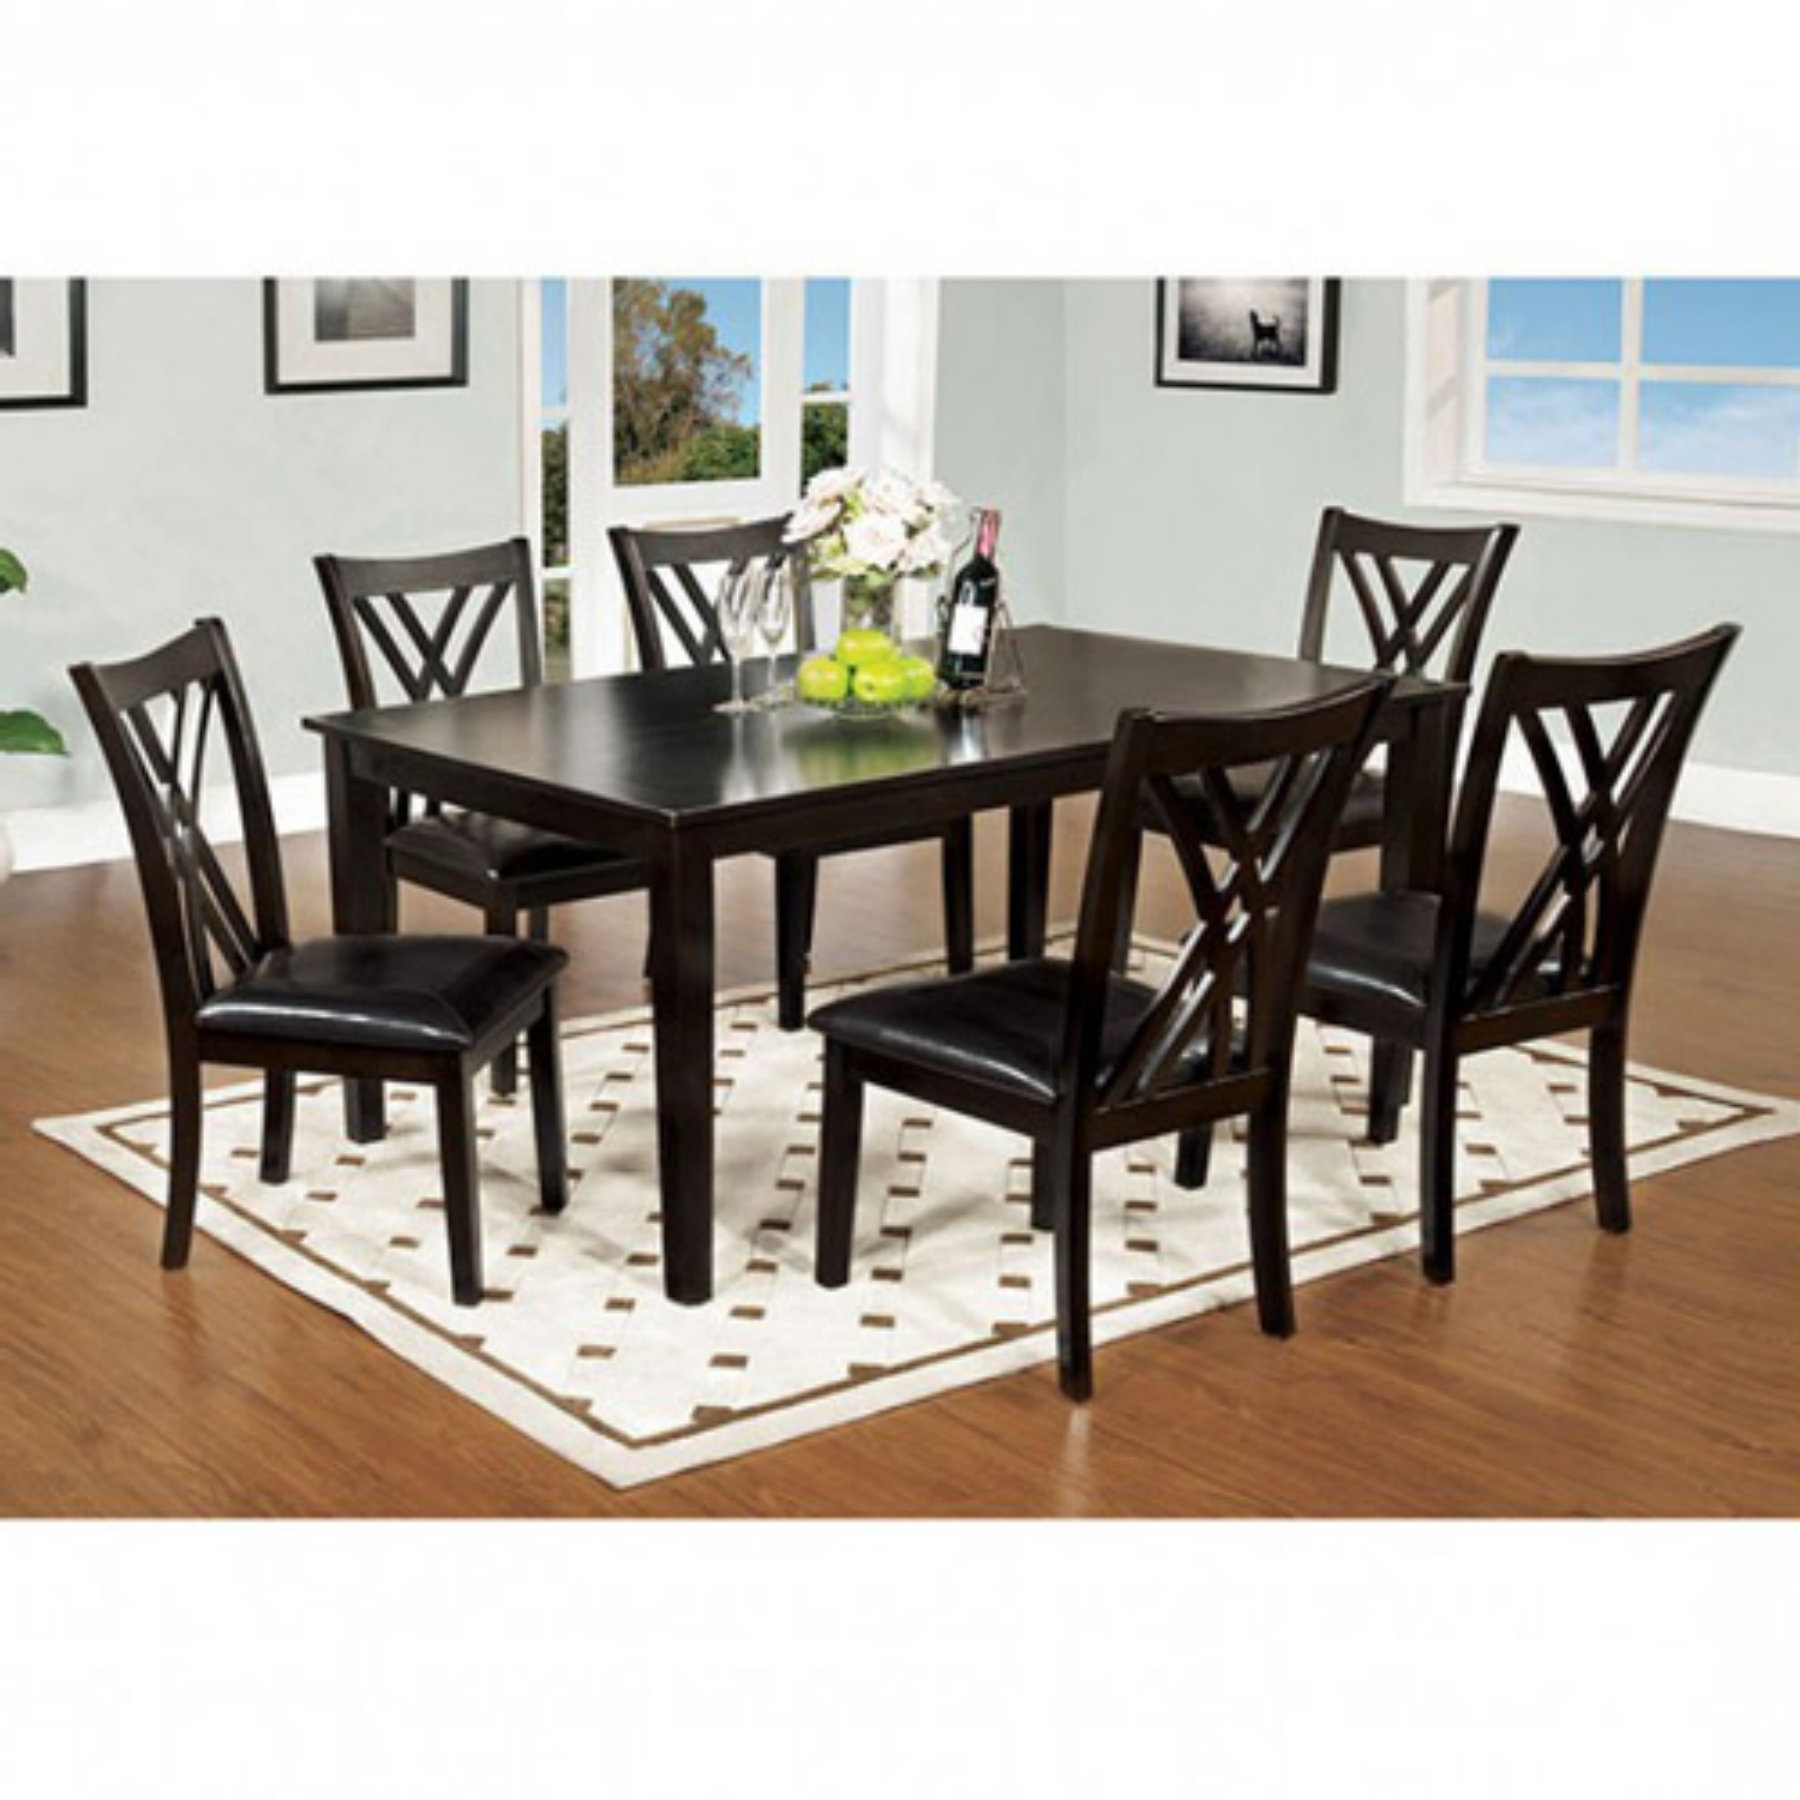 Laurent 7 Piece Rectangle Dining Sets With Wood Chairs With Latest Benzara Springhill Enticing 7 Piece Rectangular Dining Table Set In (View 15 of 25)